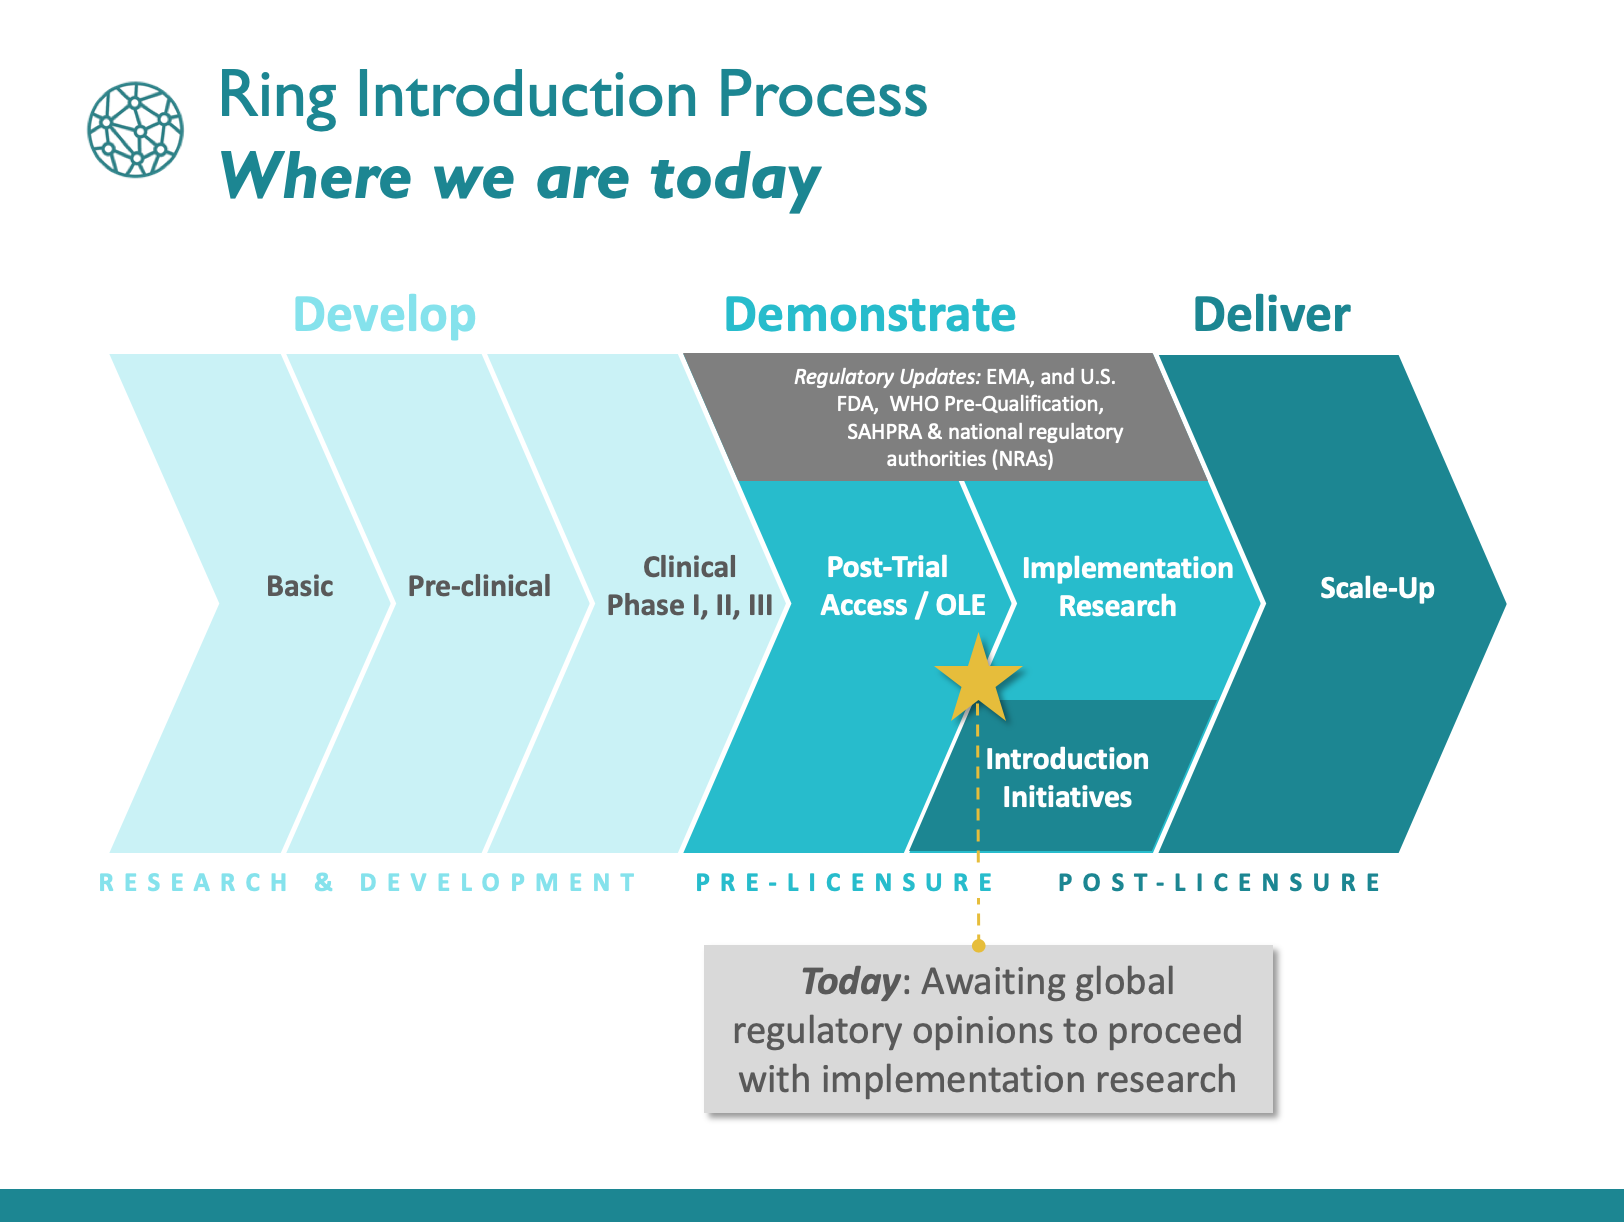 Overview of the ring introduction process